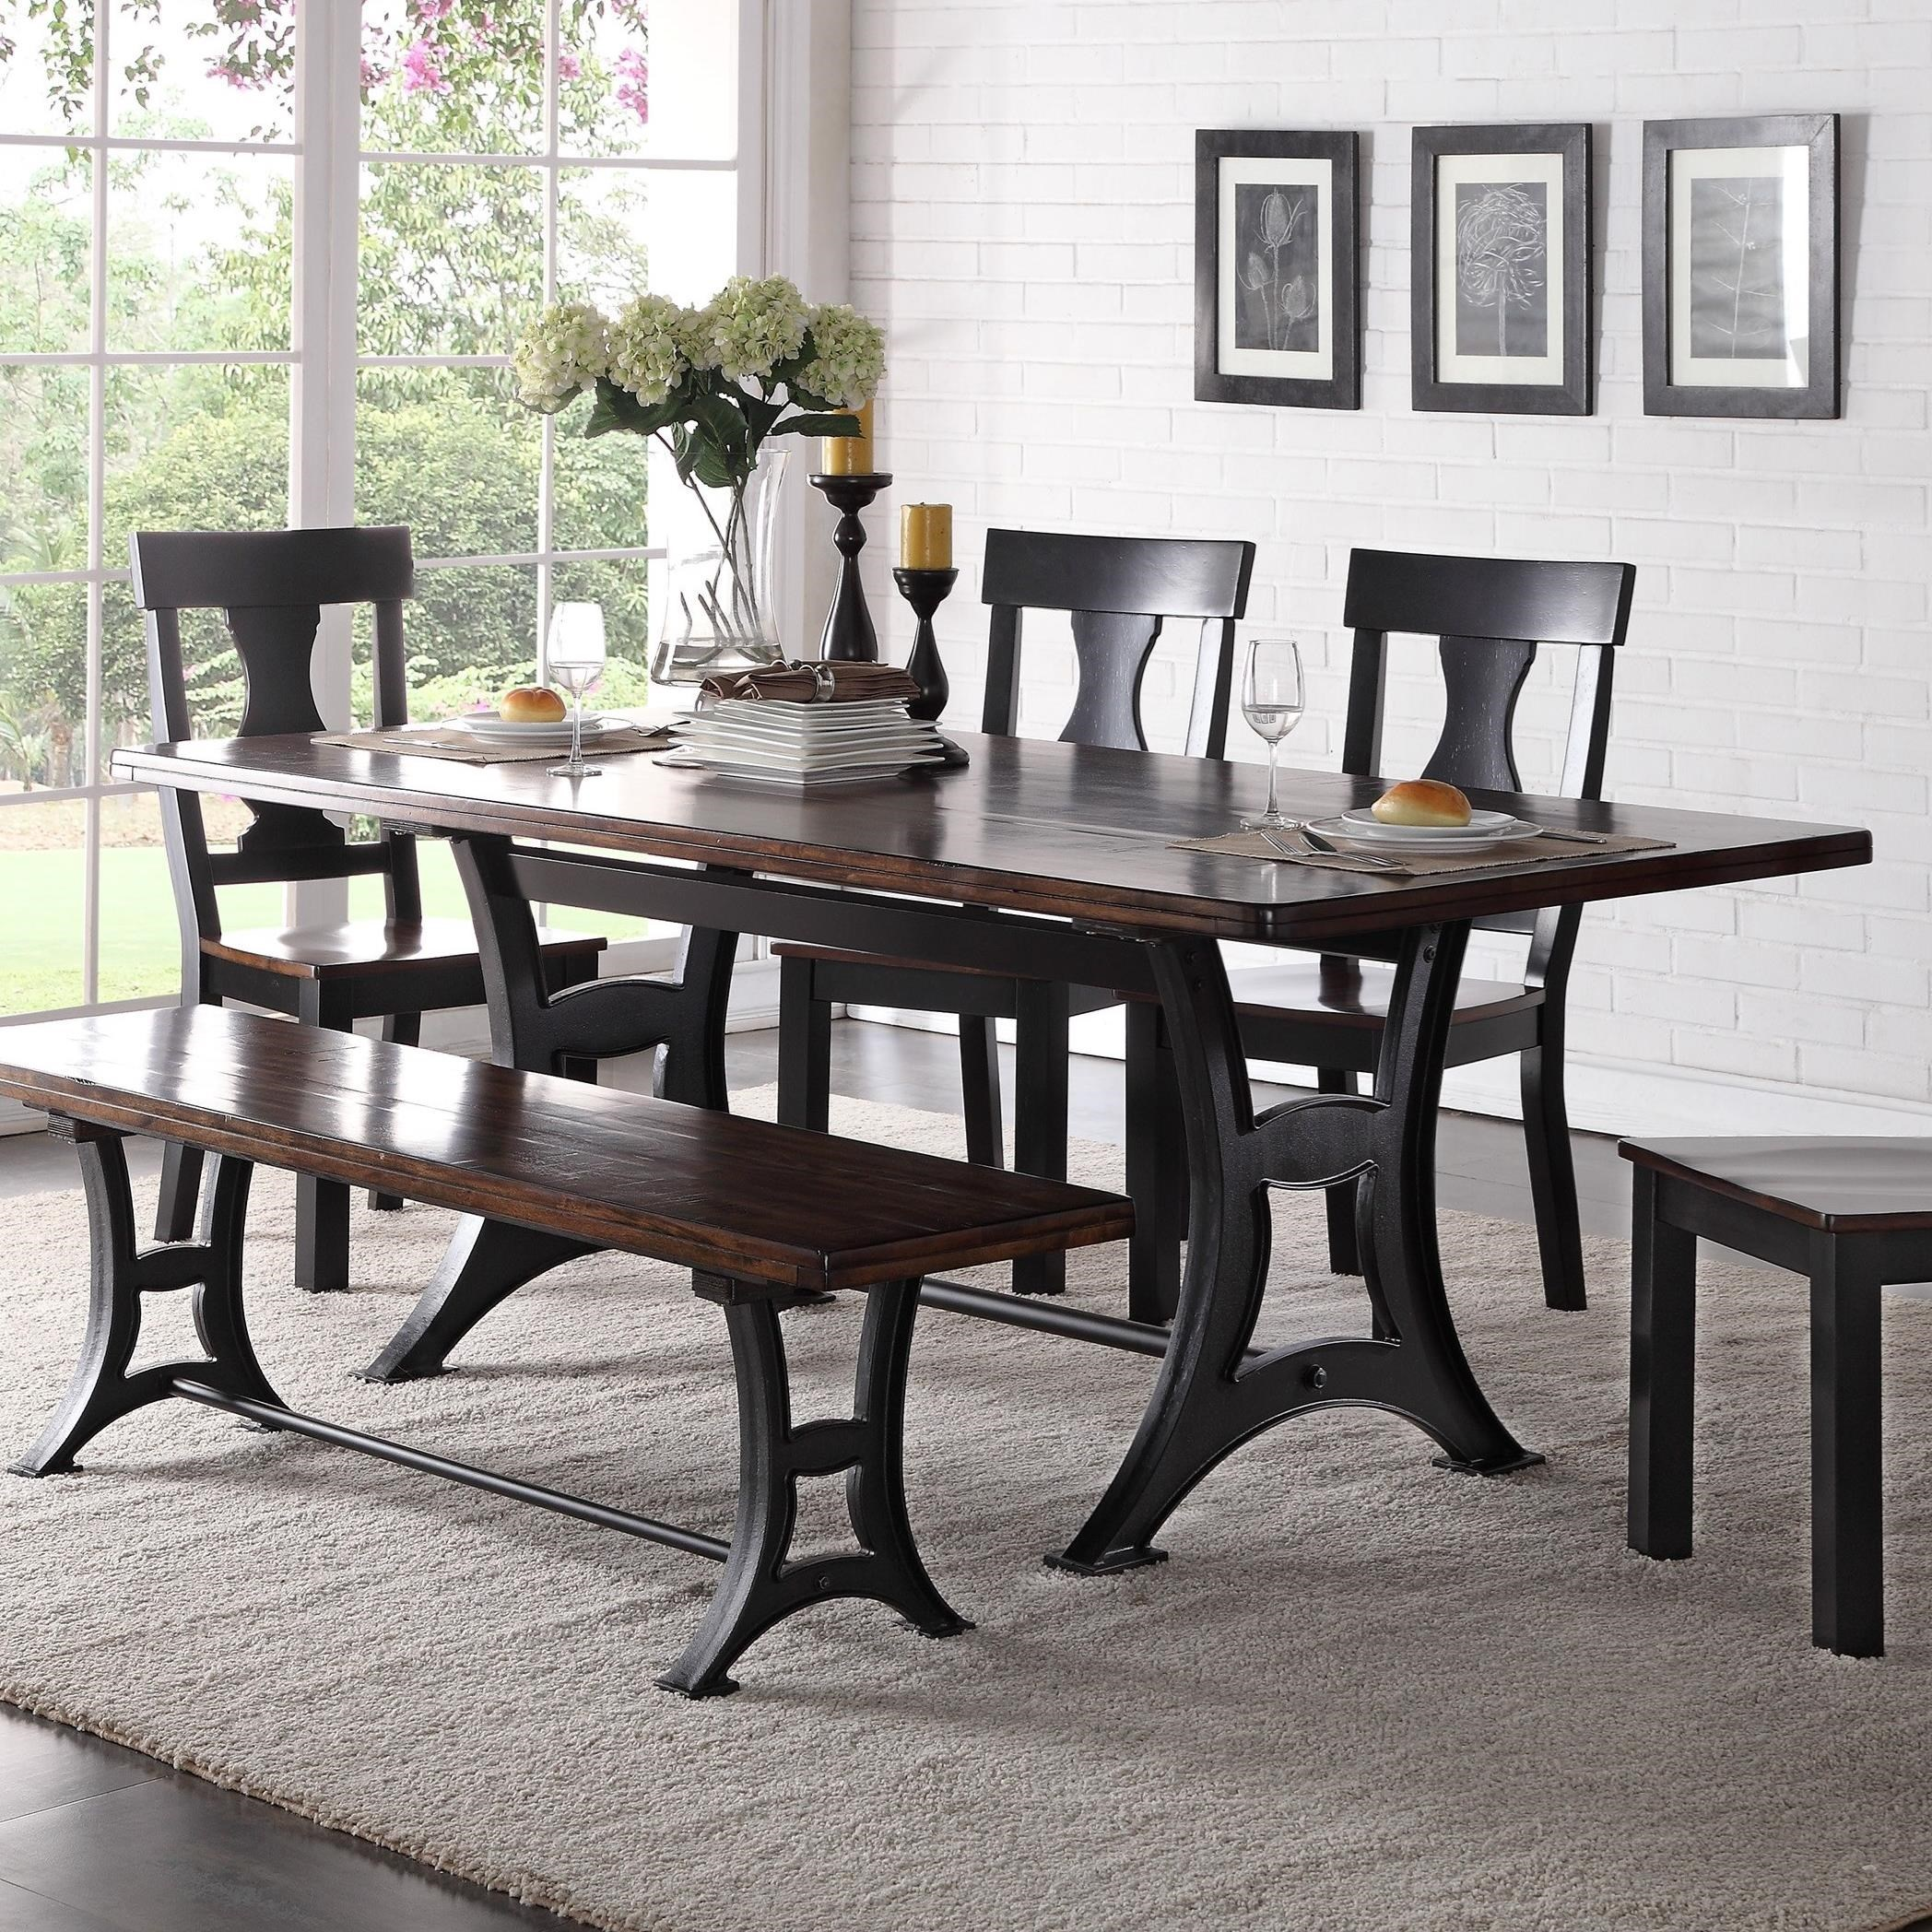 industrial kitchen table furniture. Contemporary Table Crown Mark Astor Industrial Dining Table With Trestle Base And Rustic Top And Kitchen Furniture R